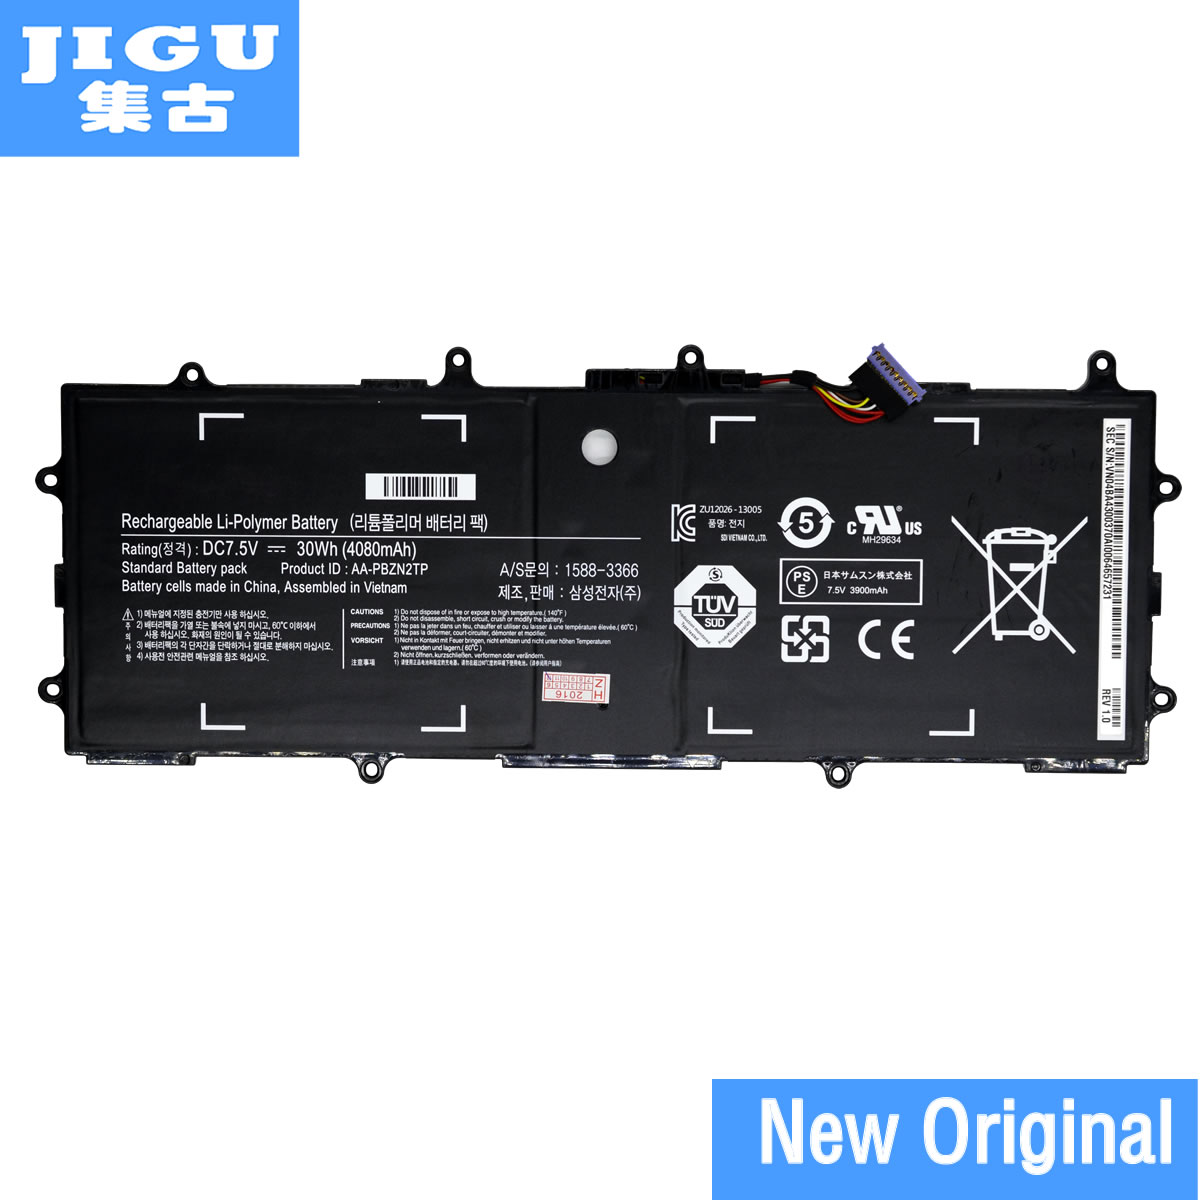 JIGU new genuine AA-PBZN2TP Battery for Samsung Chromebook XE500T1C 905S 915S 905s3g XE303 XE303C12 7.5V 4080mAh